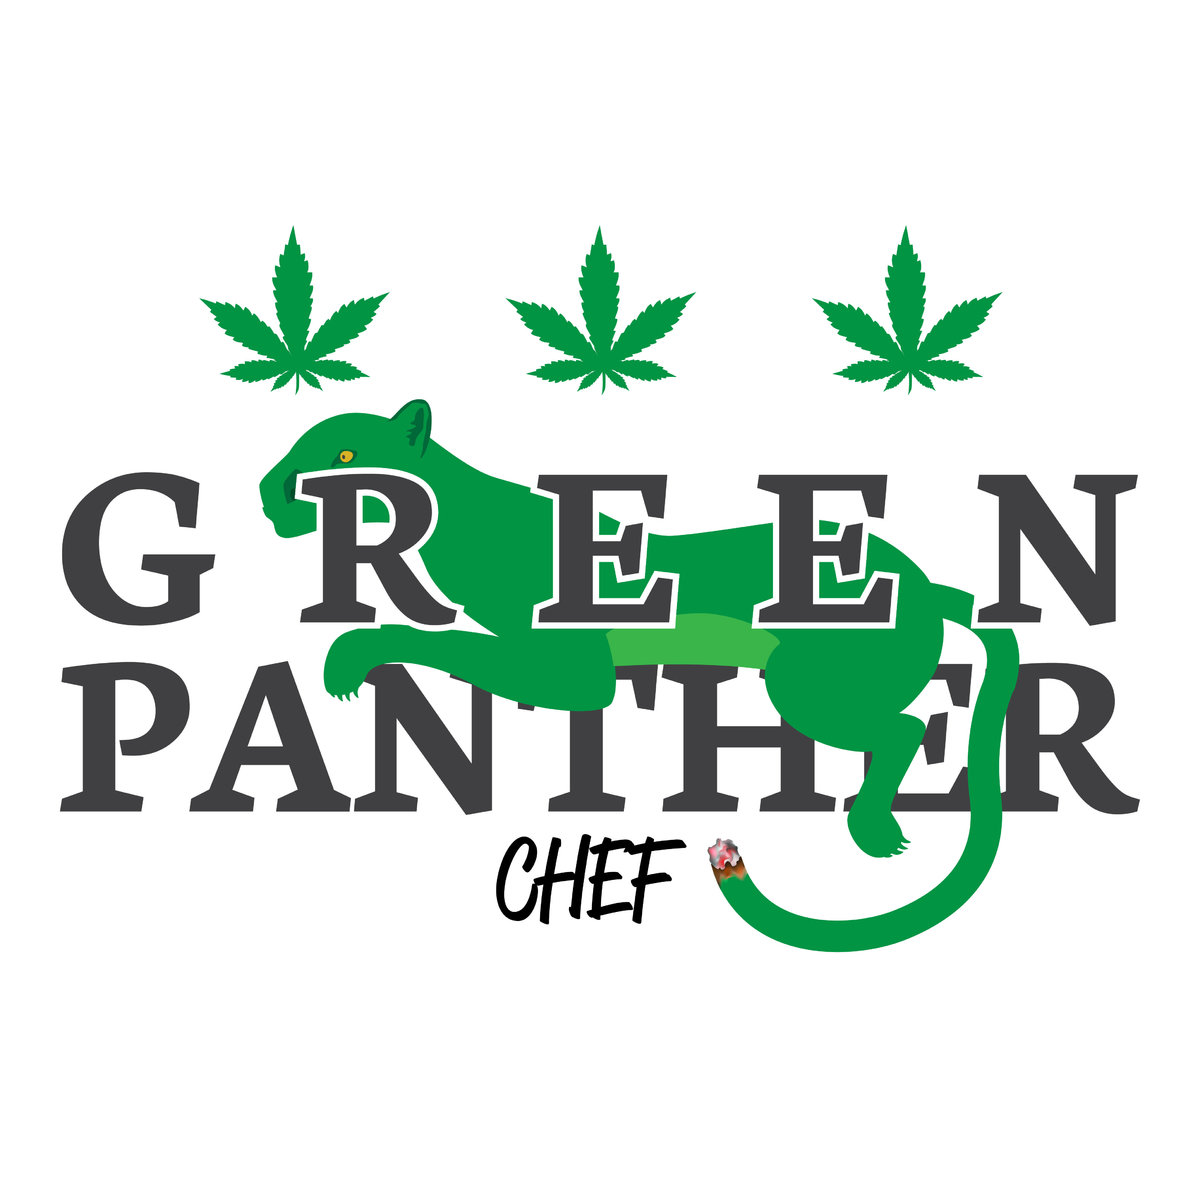 Green Panther Chef Logo.jpg